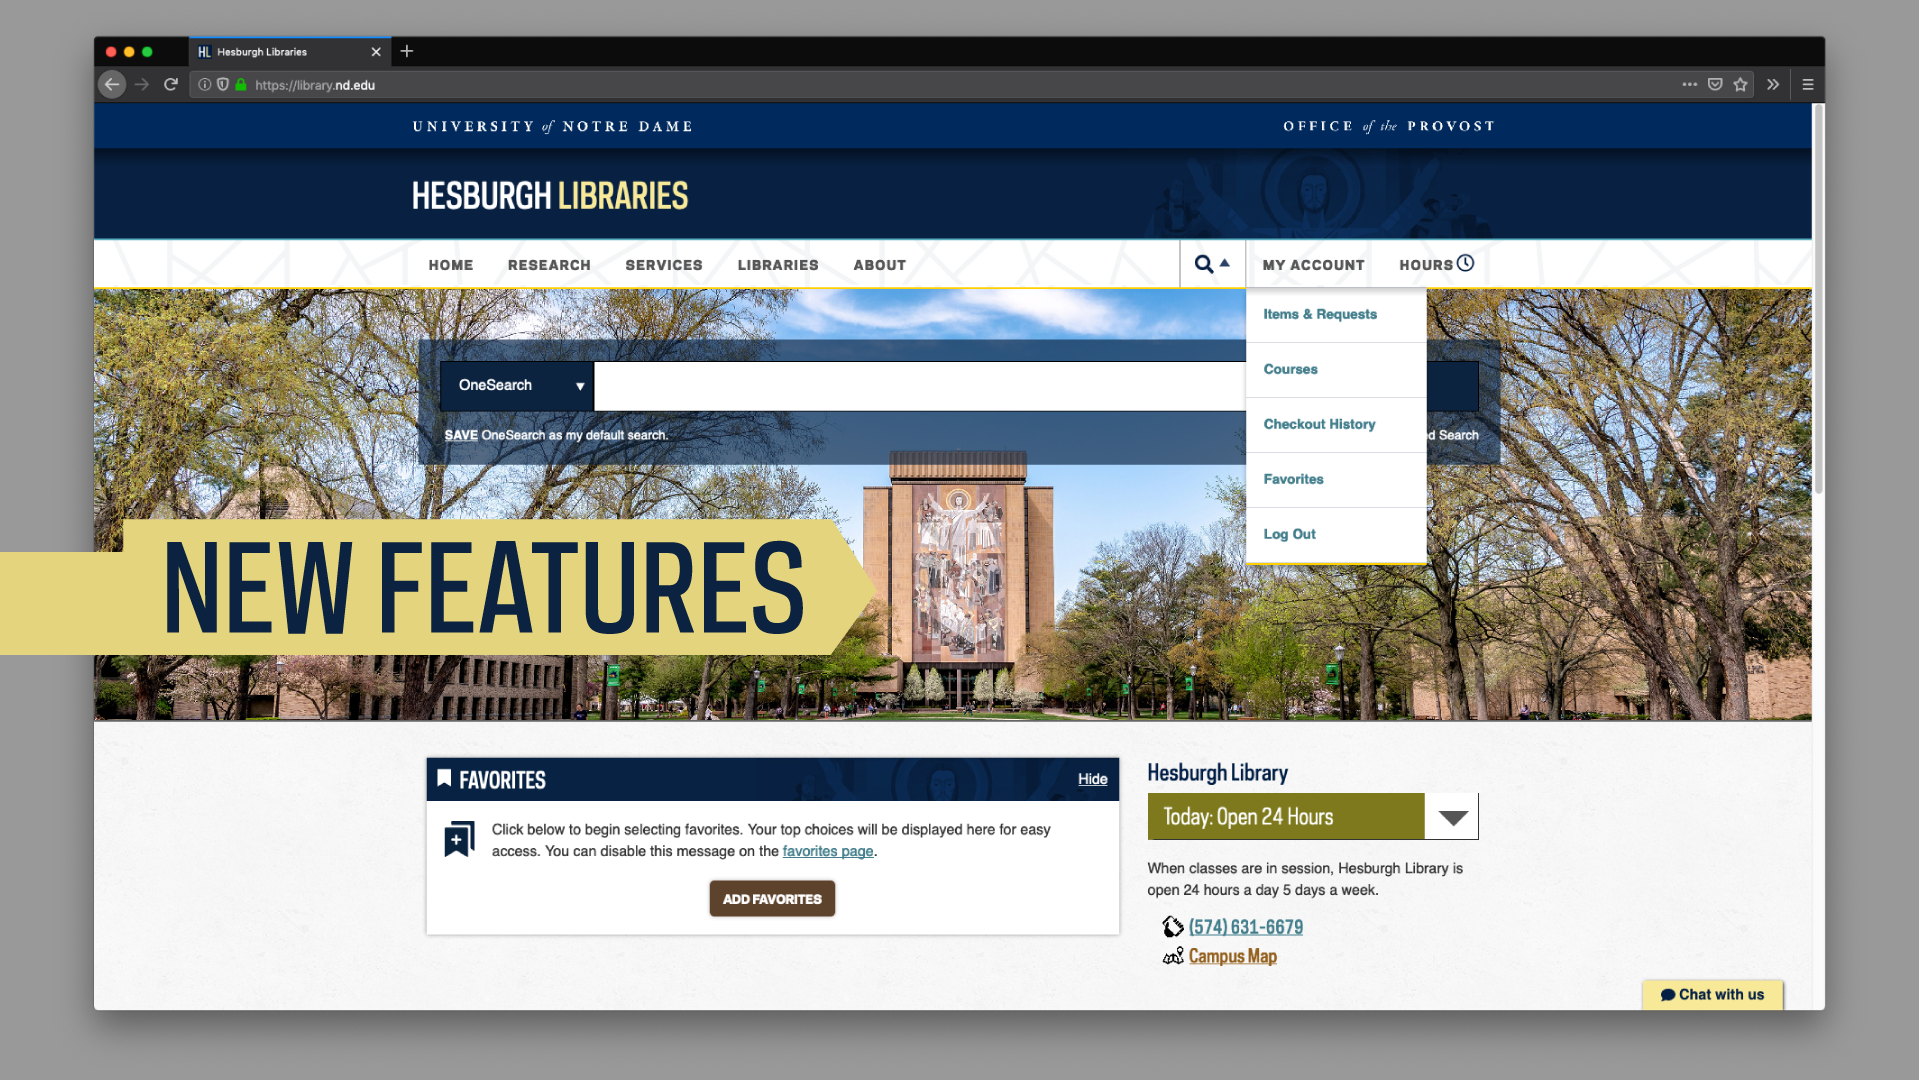 Hesburgh Libraries